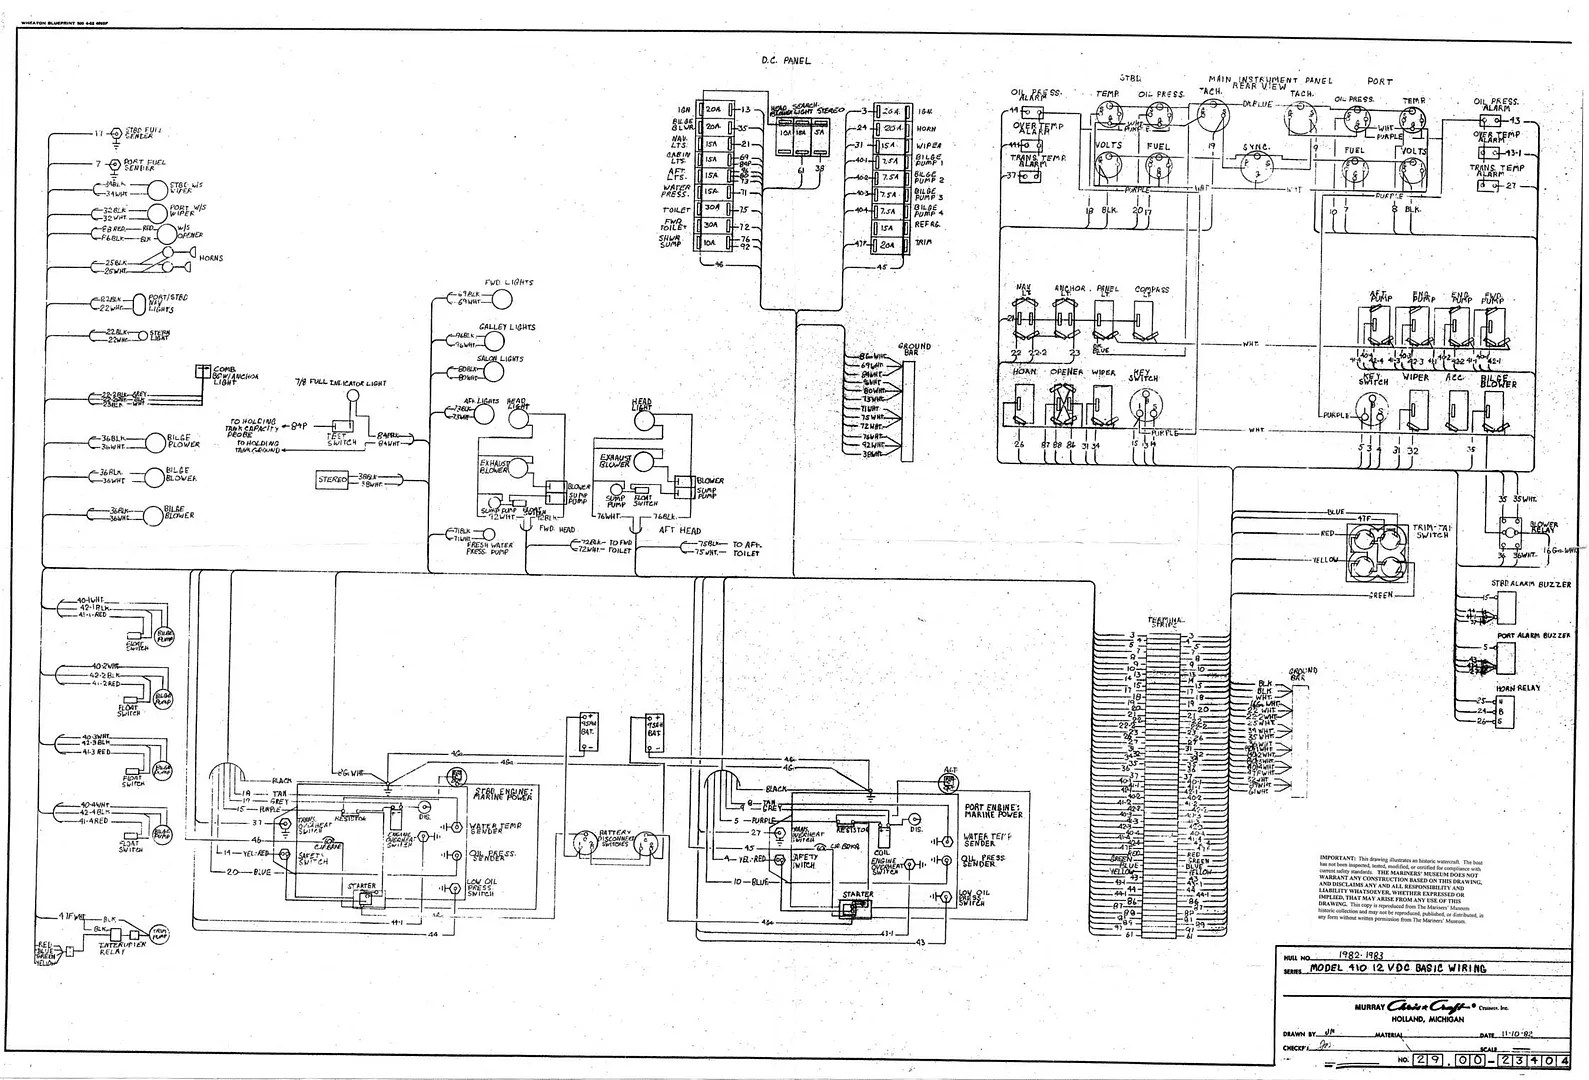 Brilliant Wiring Diagram Chris Craft Wiring Diagram G8 Geral Blikvitt Wiring Digital Resources Geralblikvittorg